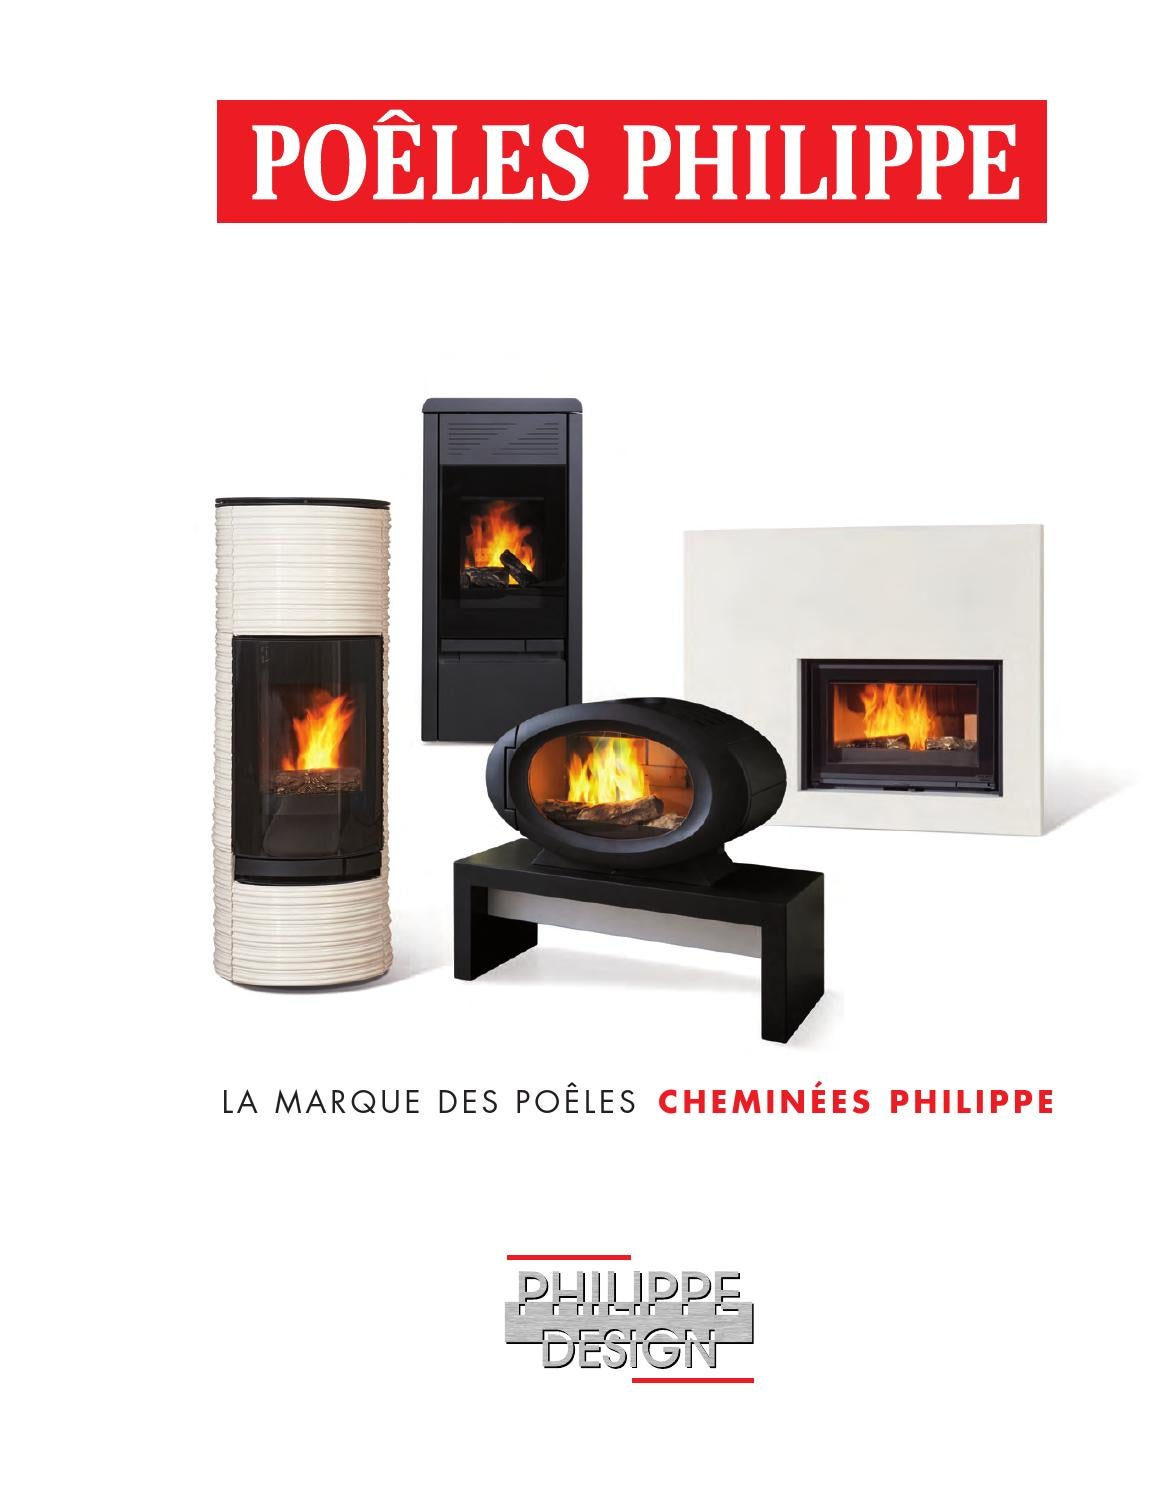 Cheminées Philippe Clairvaux Philippe Design 2015 By Idea Studio Caminetti Issuu